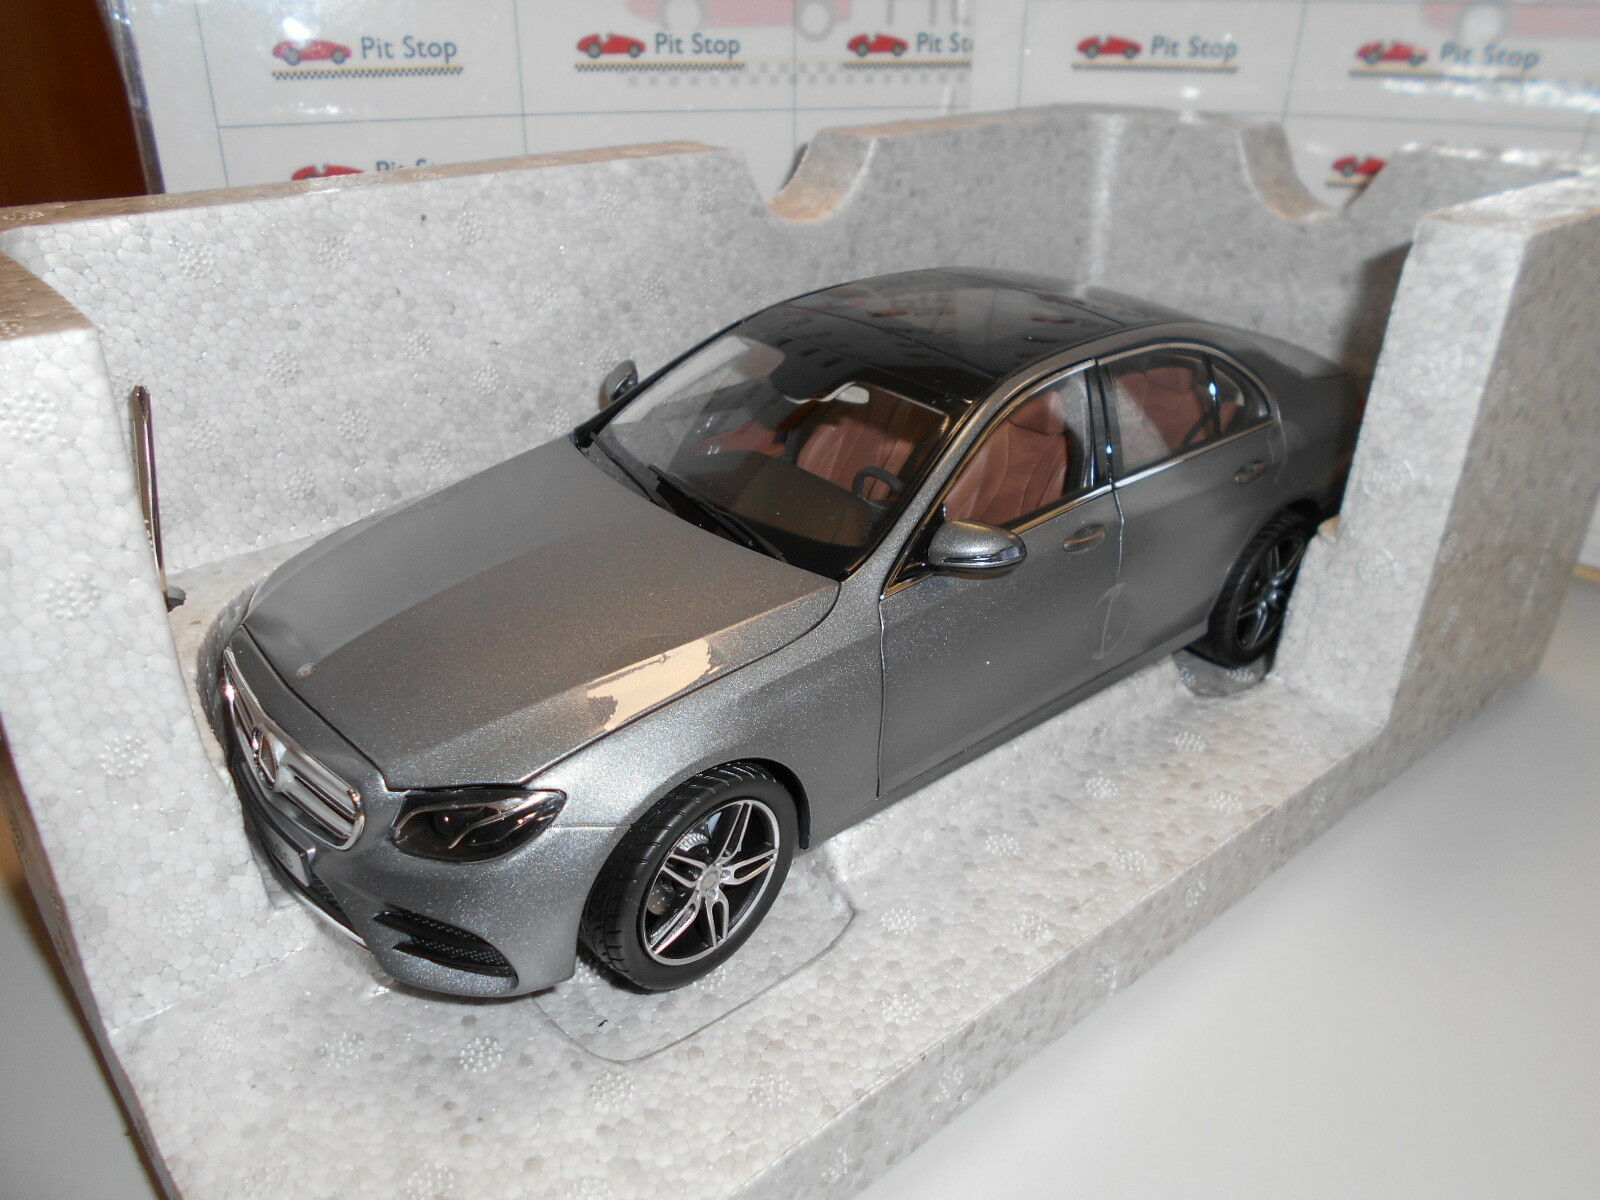 Iscb 66960379 by 0 Mercedes Benz and Class w213 limousine amg line Grey 1 18